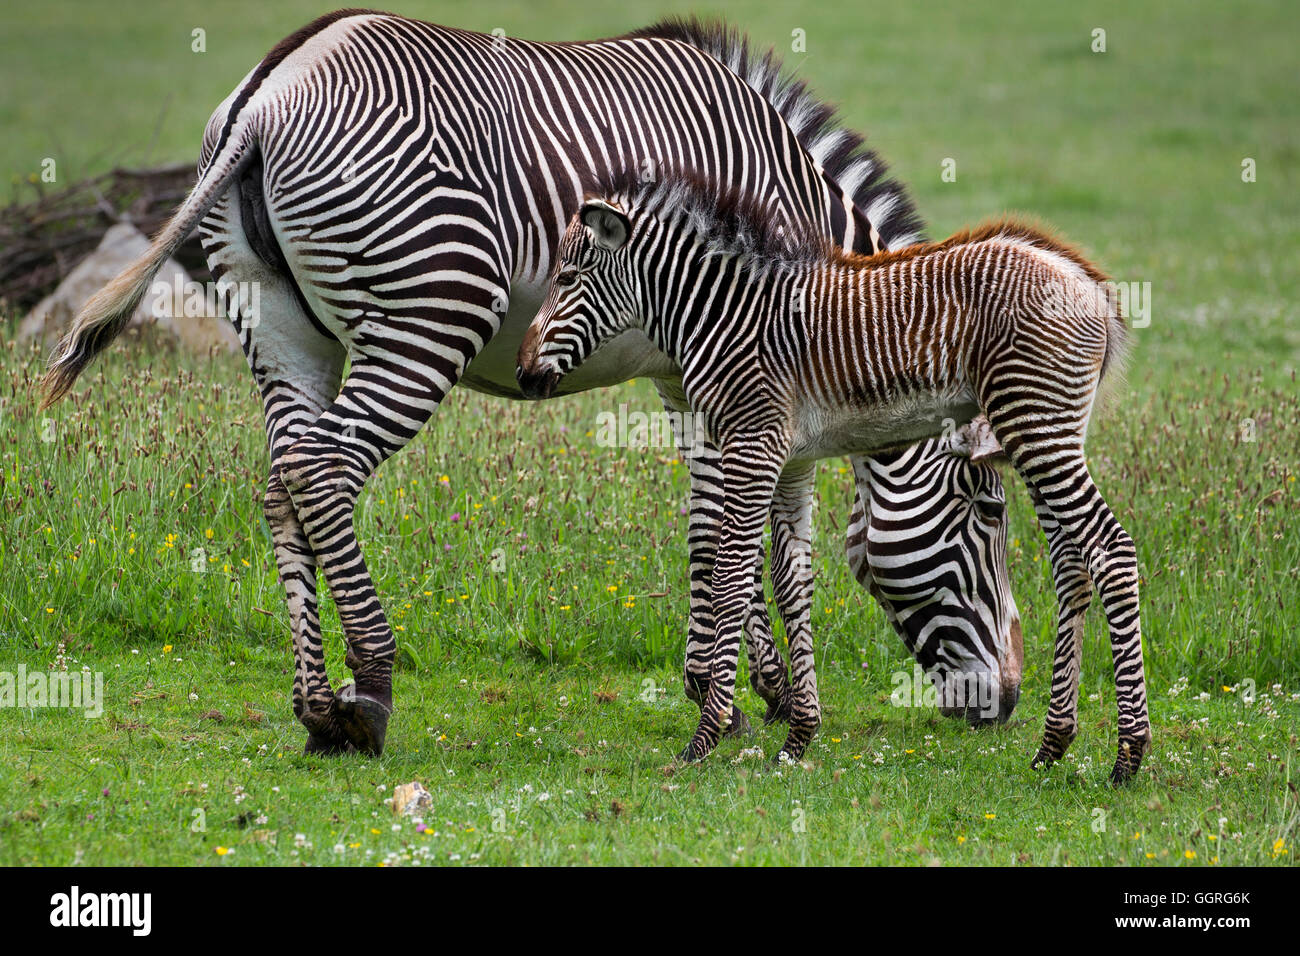 Grévy's zebra with her three-week-old foal - Stock Image